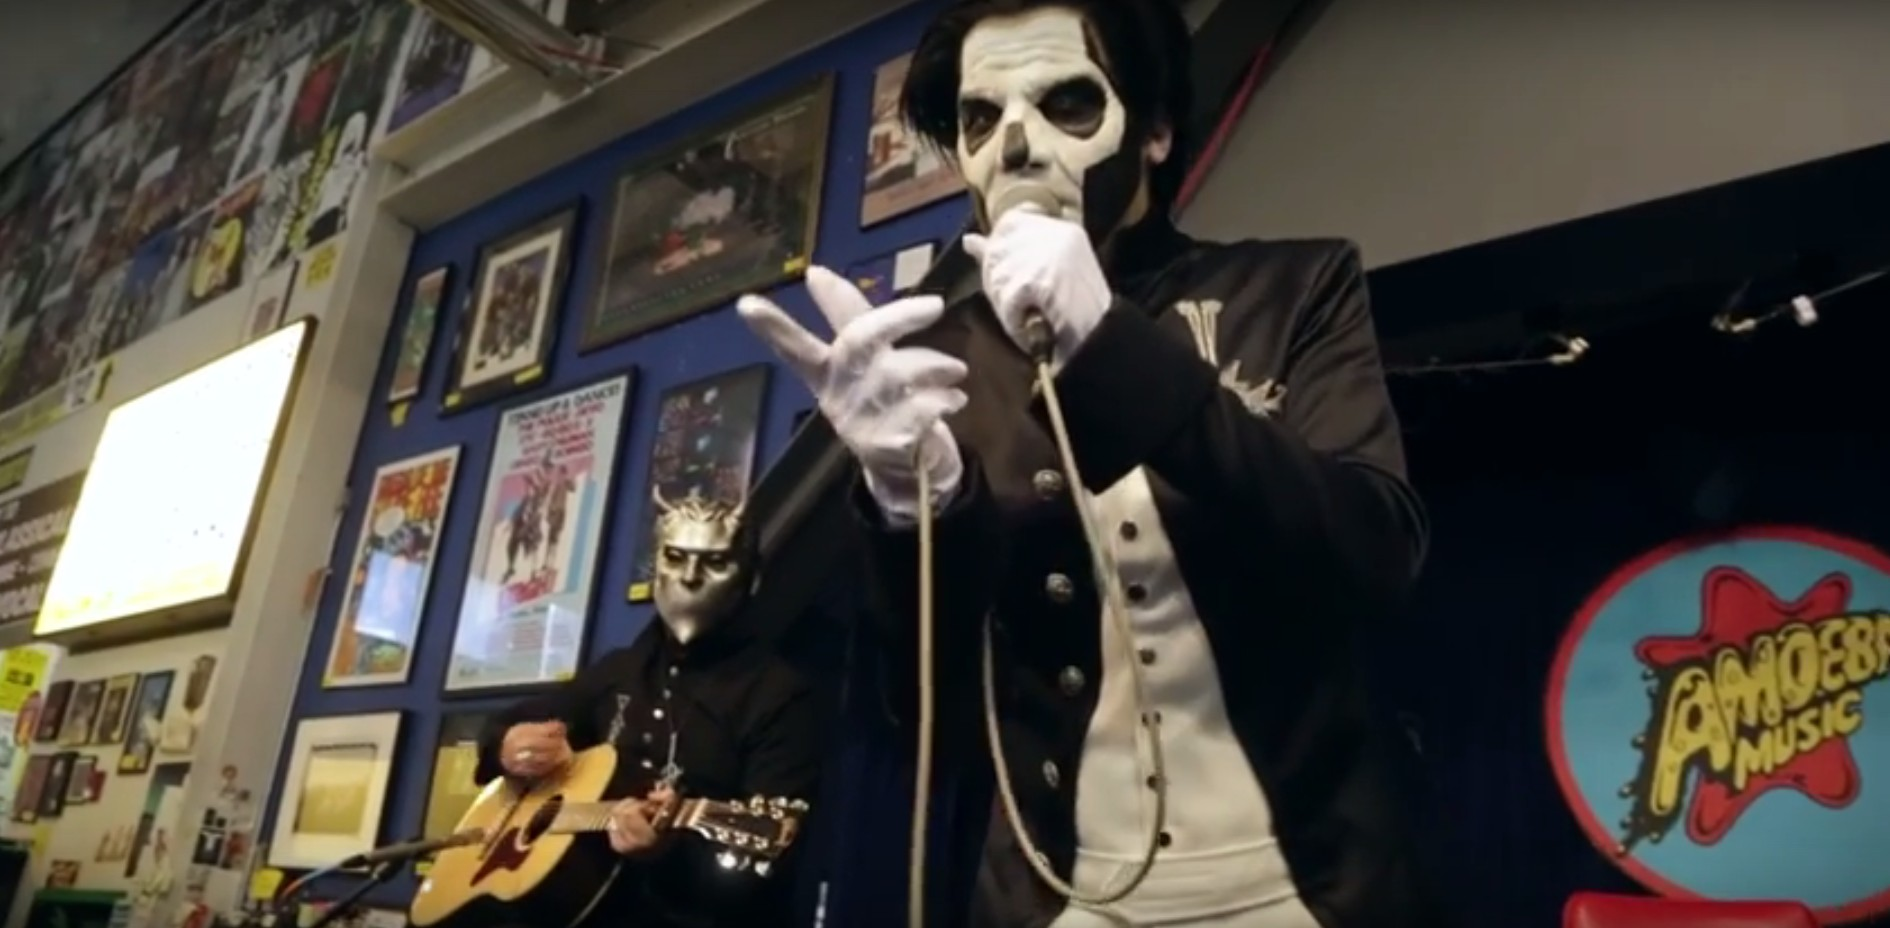 Live Video Of Ghost's Unholy/Unplugged Tour In Los Angeles